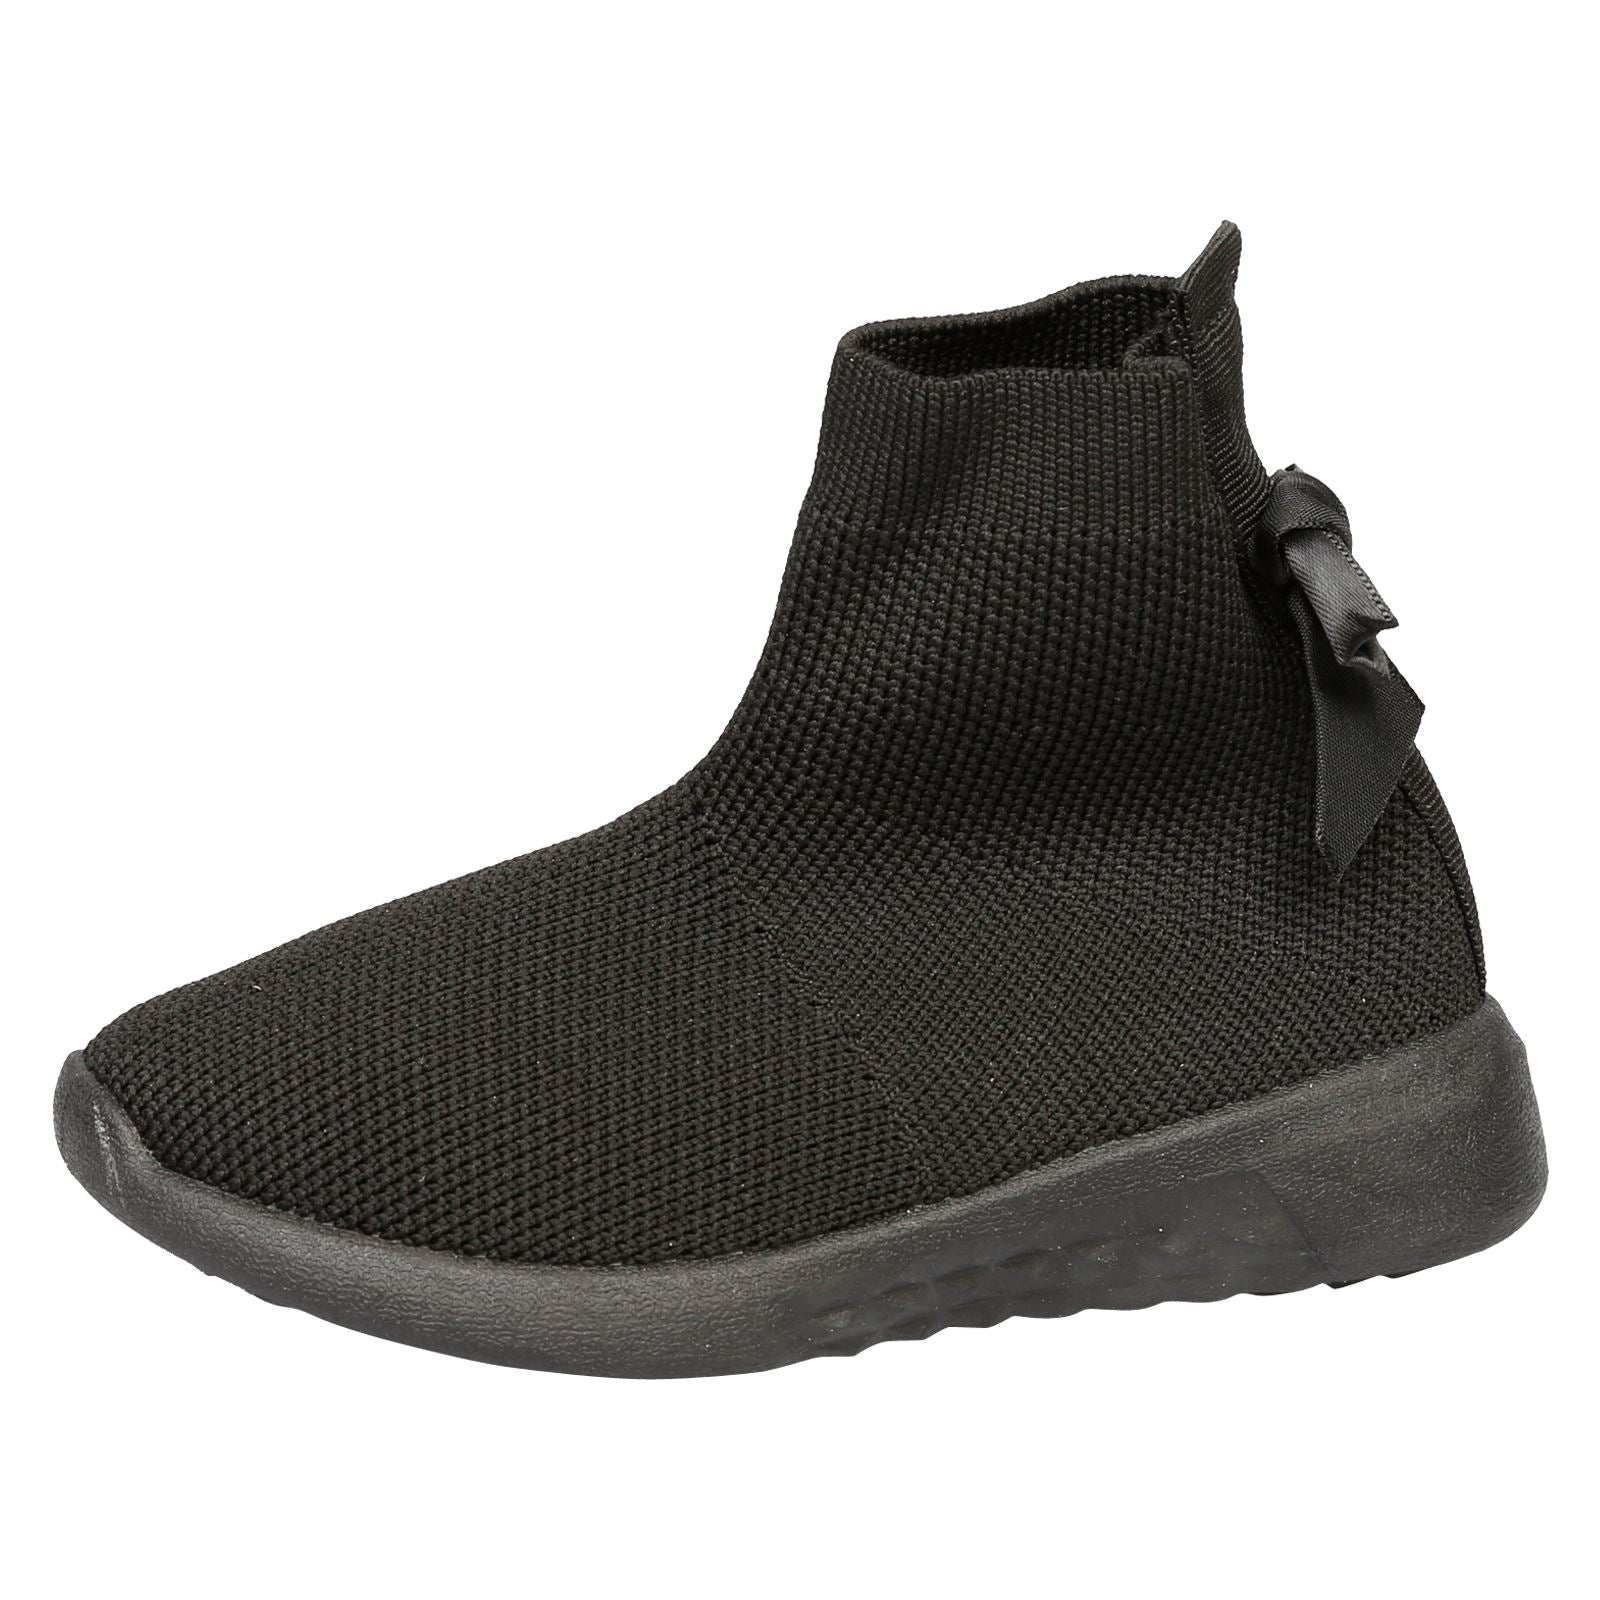 Amia Girls Knit Trainer Boots in Black - Feet First Fashion